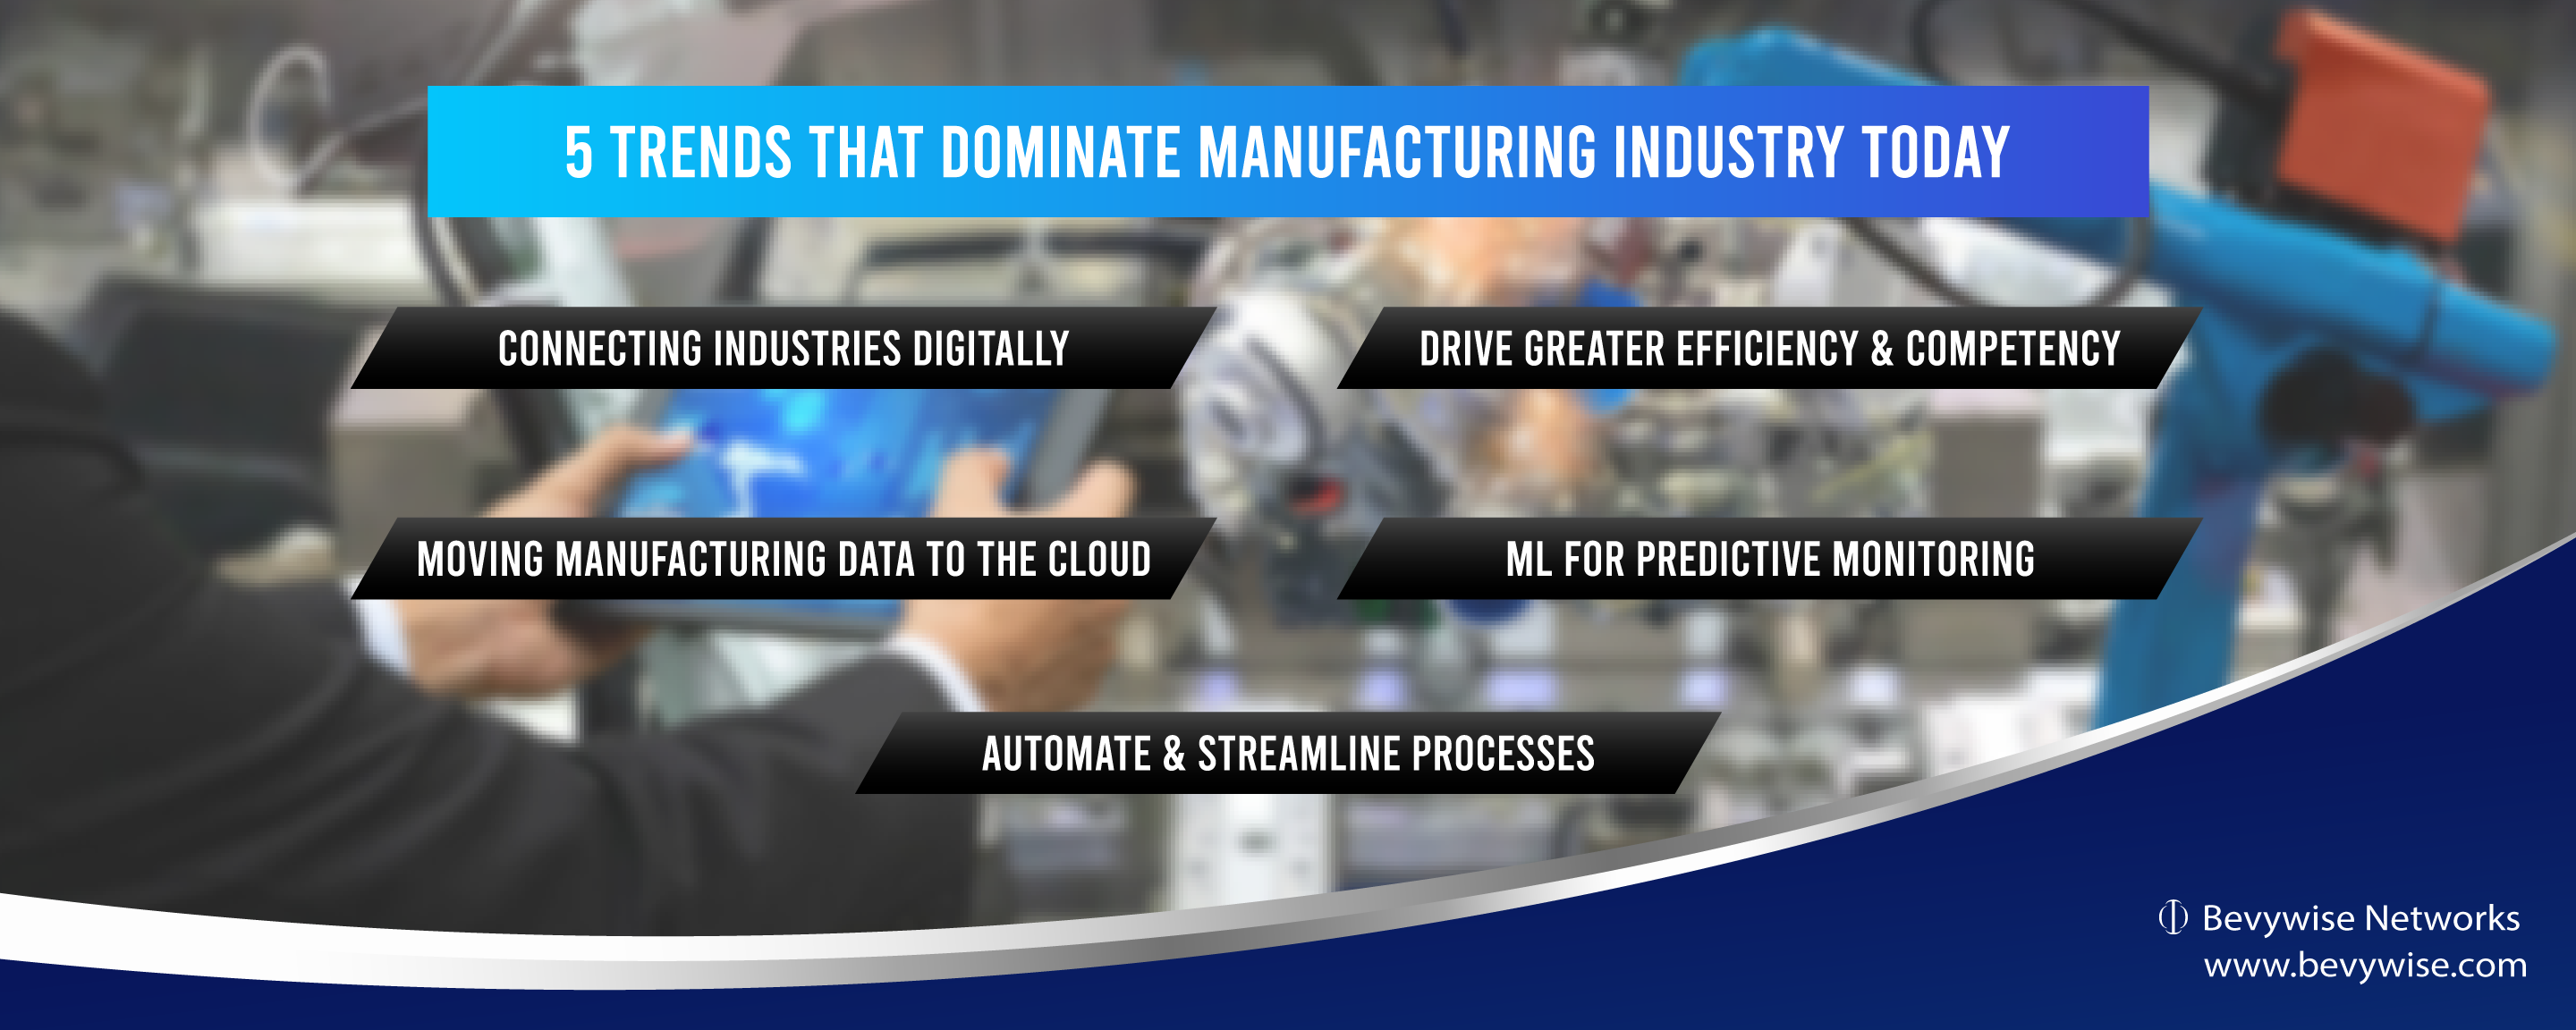 5 Trends that Dominate Manufacturing Industry Today